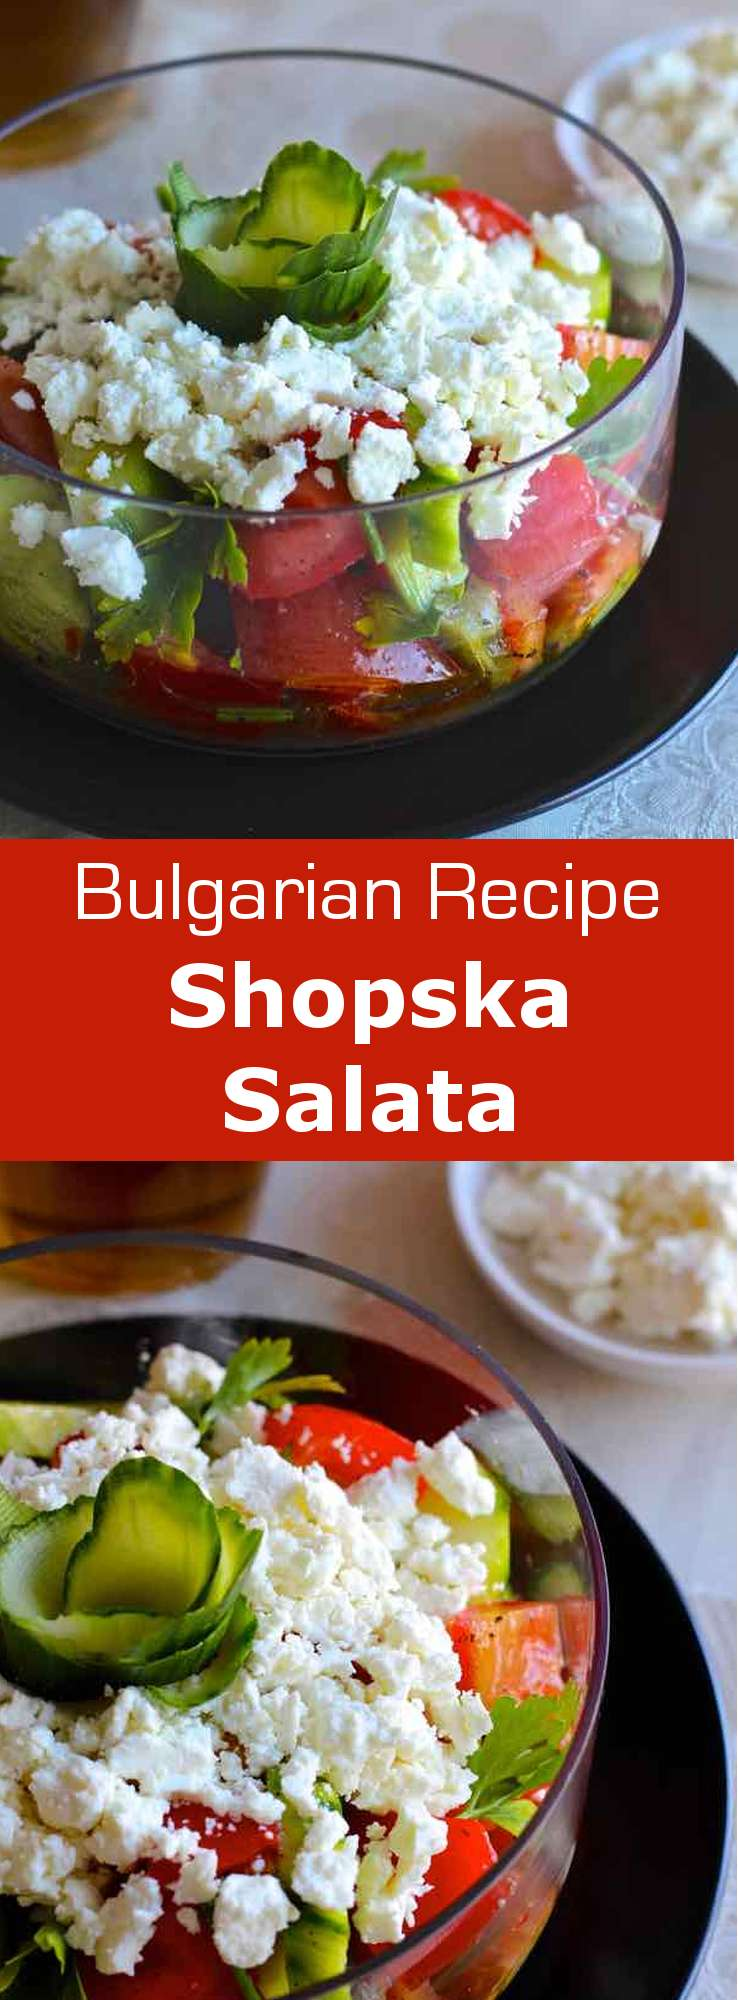 Bulgarian shopska salata is the national salad. It is made with tomatoes, cucumbers, onions, peppers and siren, which represent the national colors